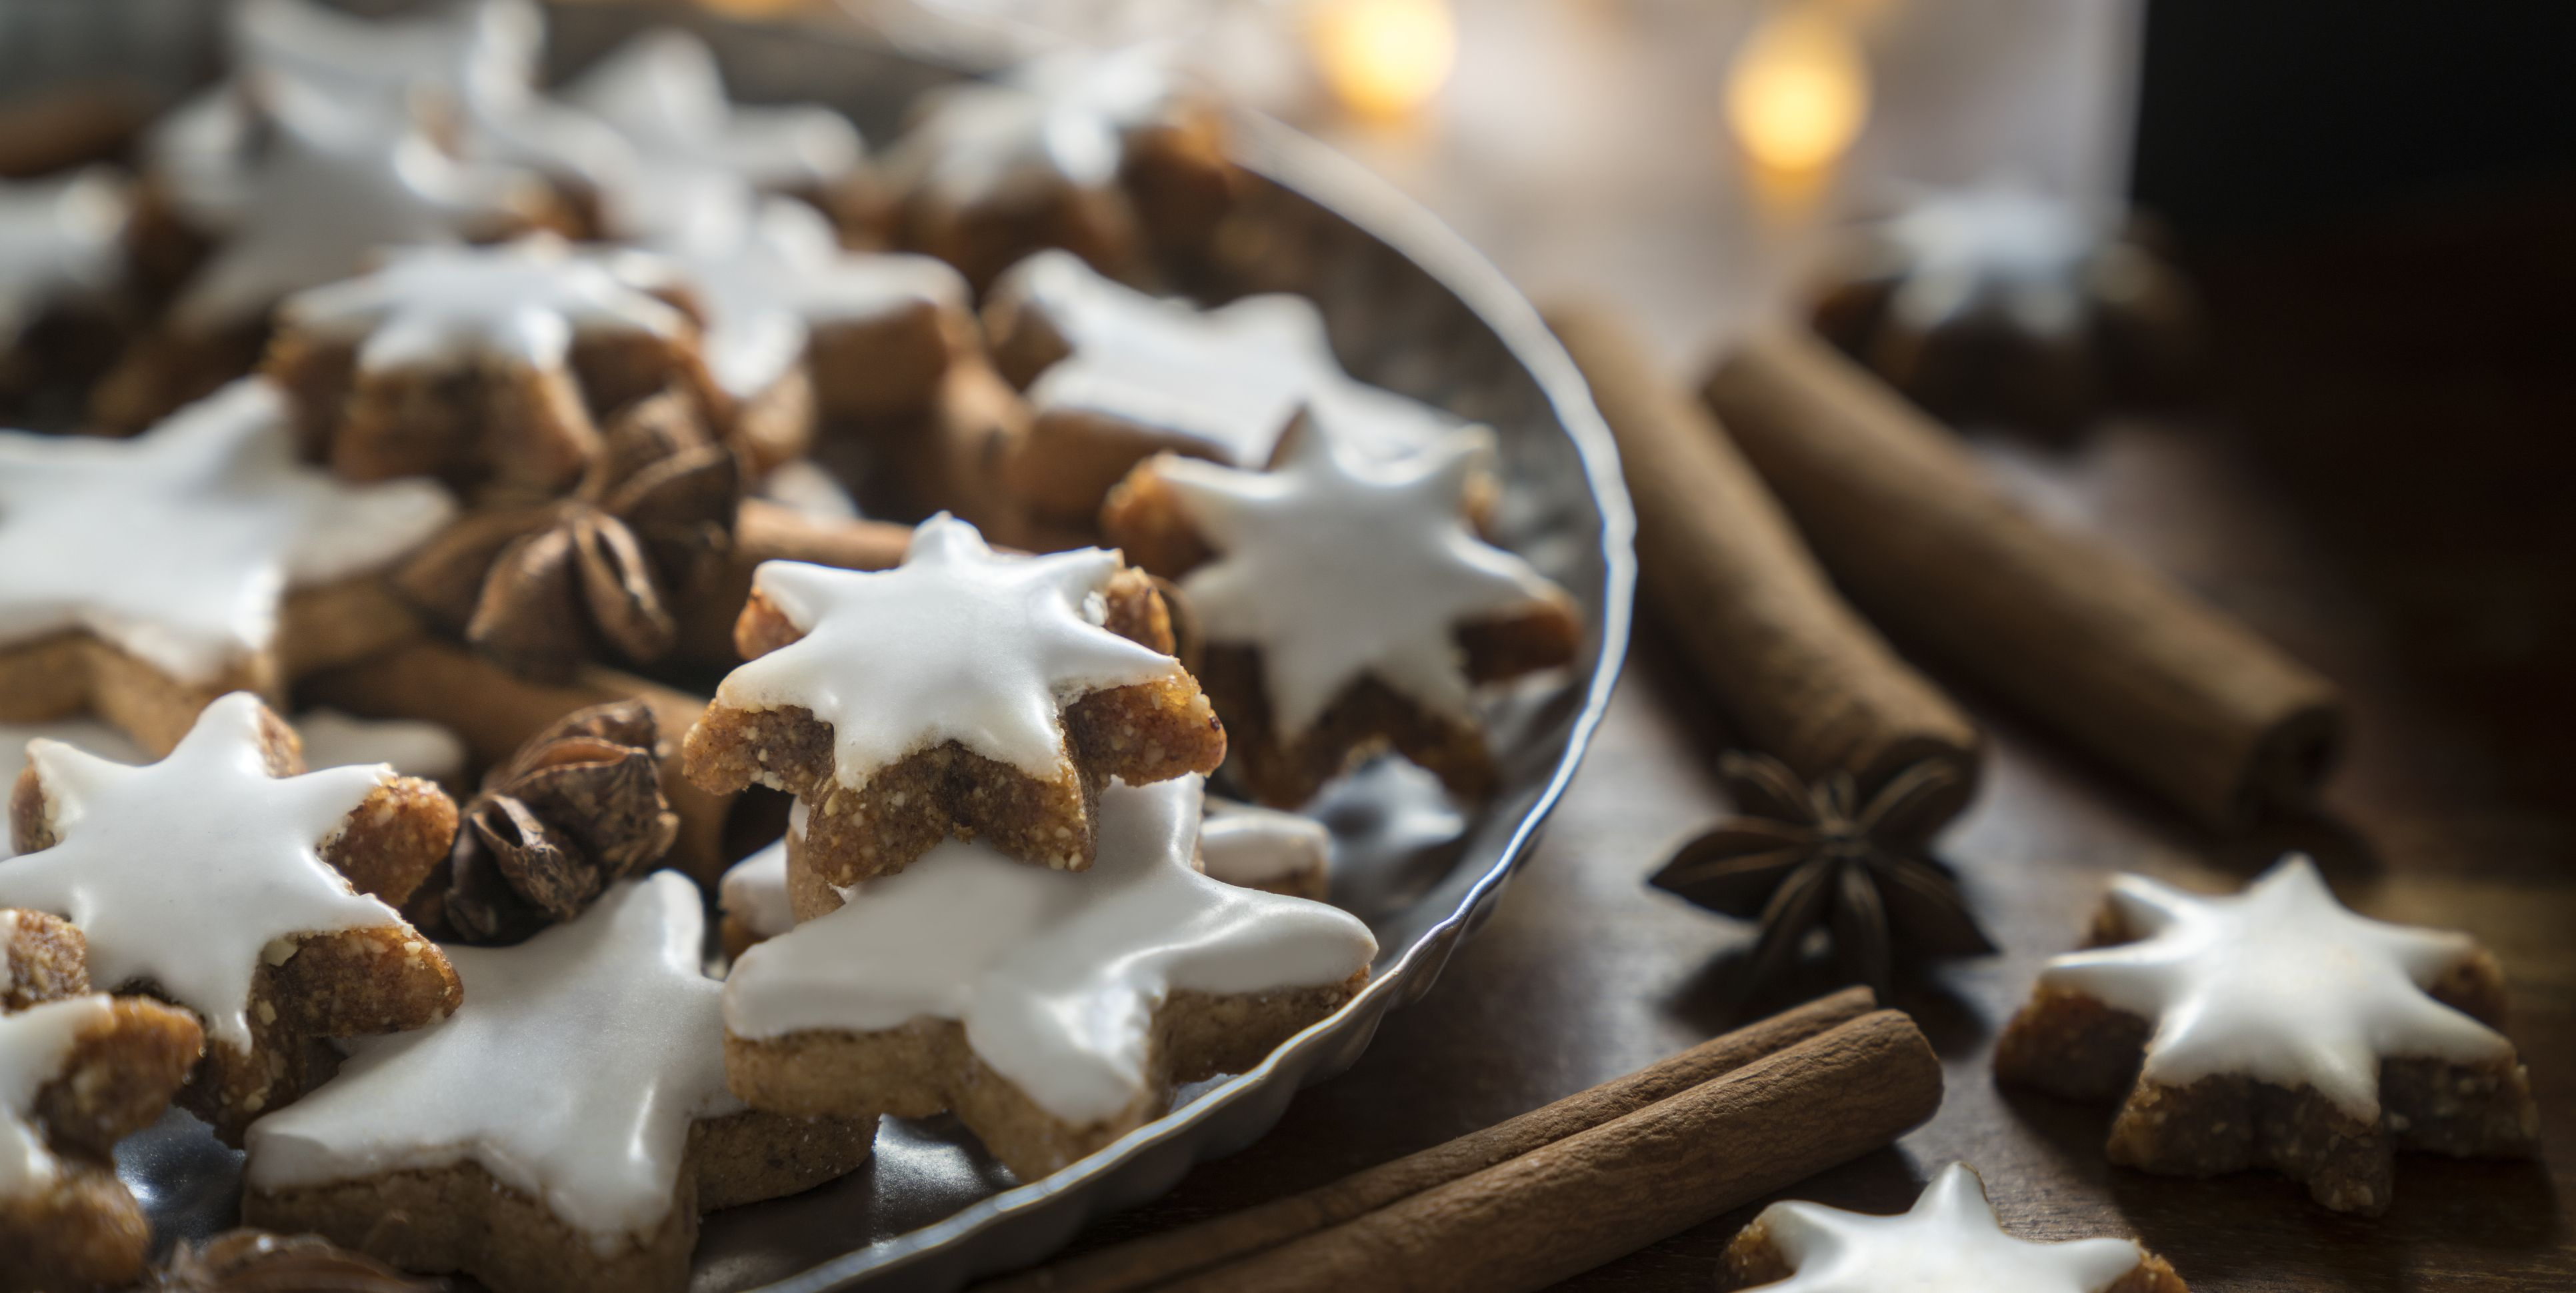 Pinterest reveals its top tried and tested Christmas recipes